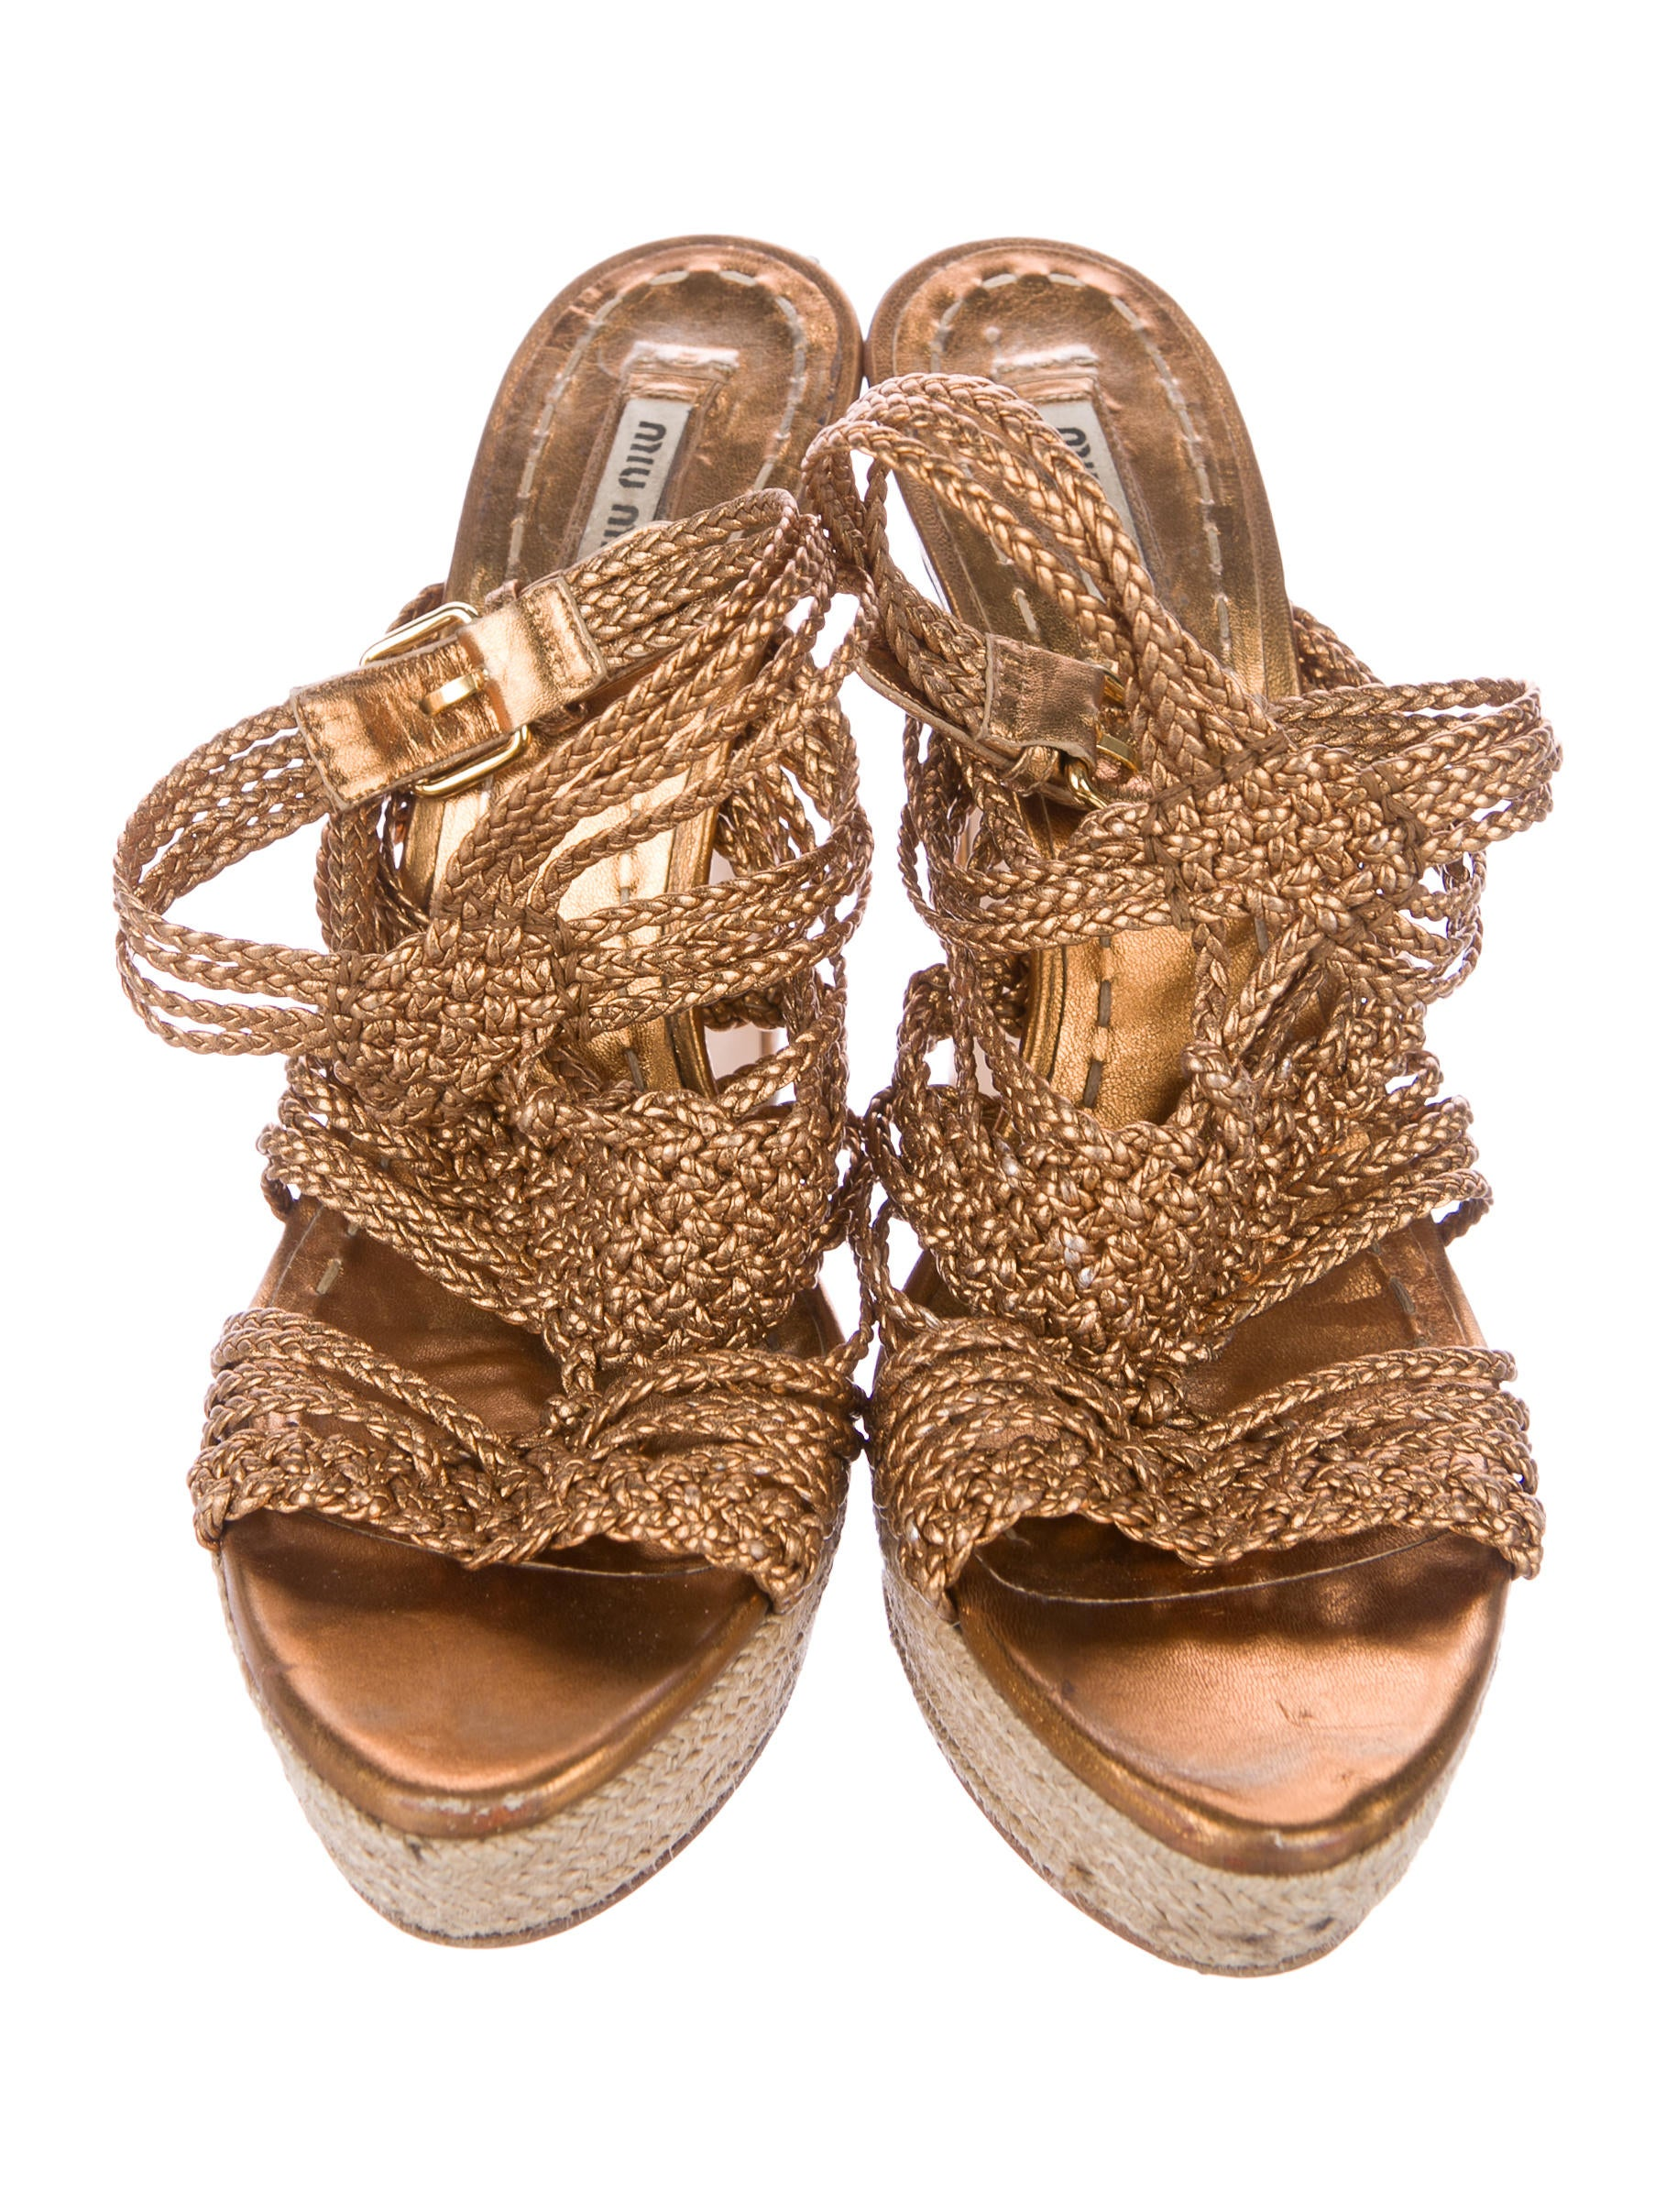 Miu Miu Braided Platform Sandals sale pre order buy cheap discounts free shipping new styles clearance looking for DBJttOZRLV